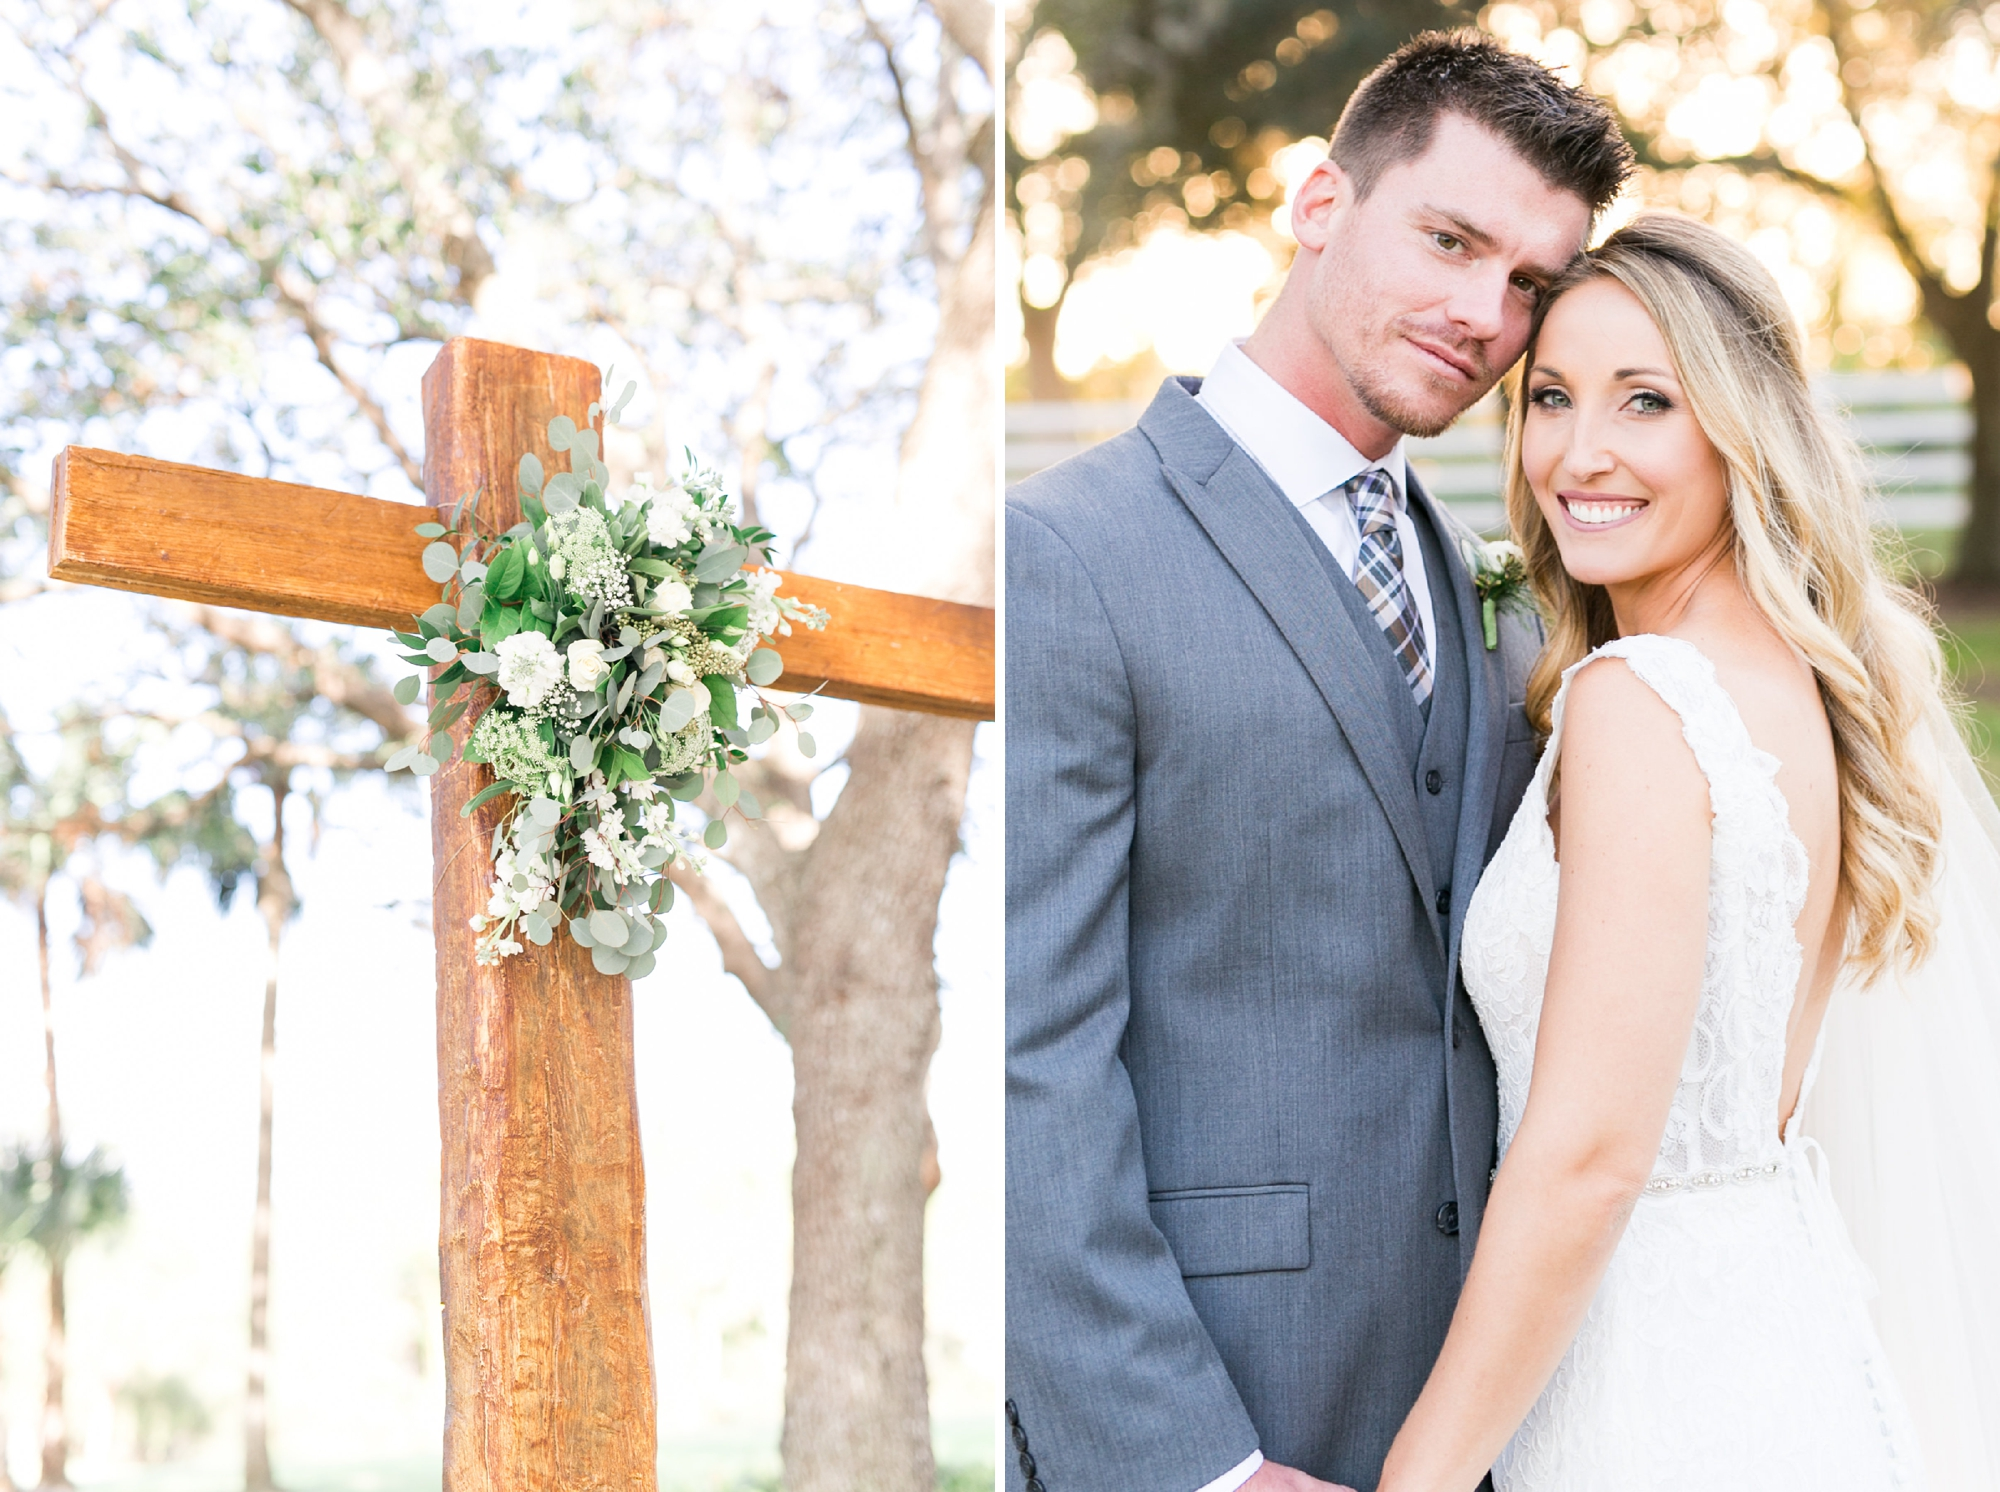 wooden cross for wedding ceremony